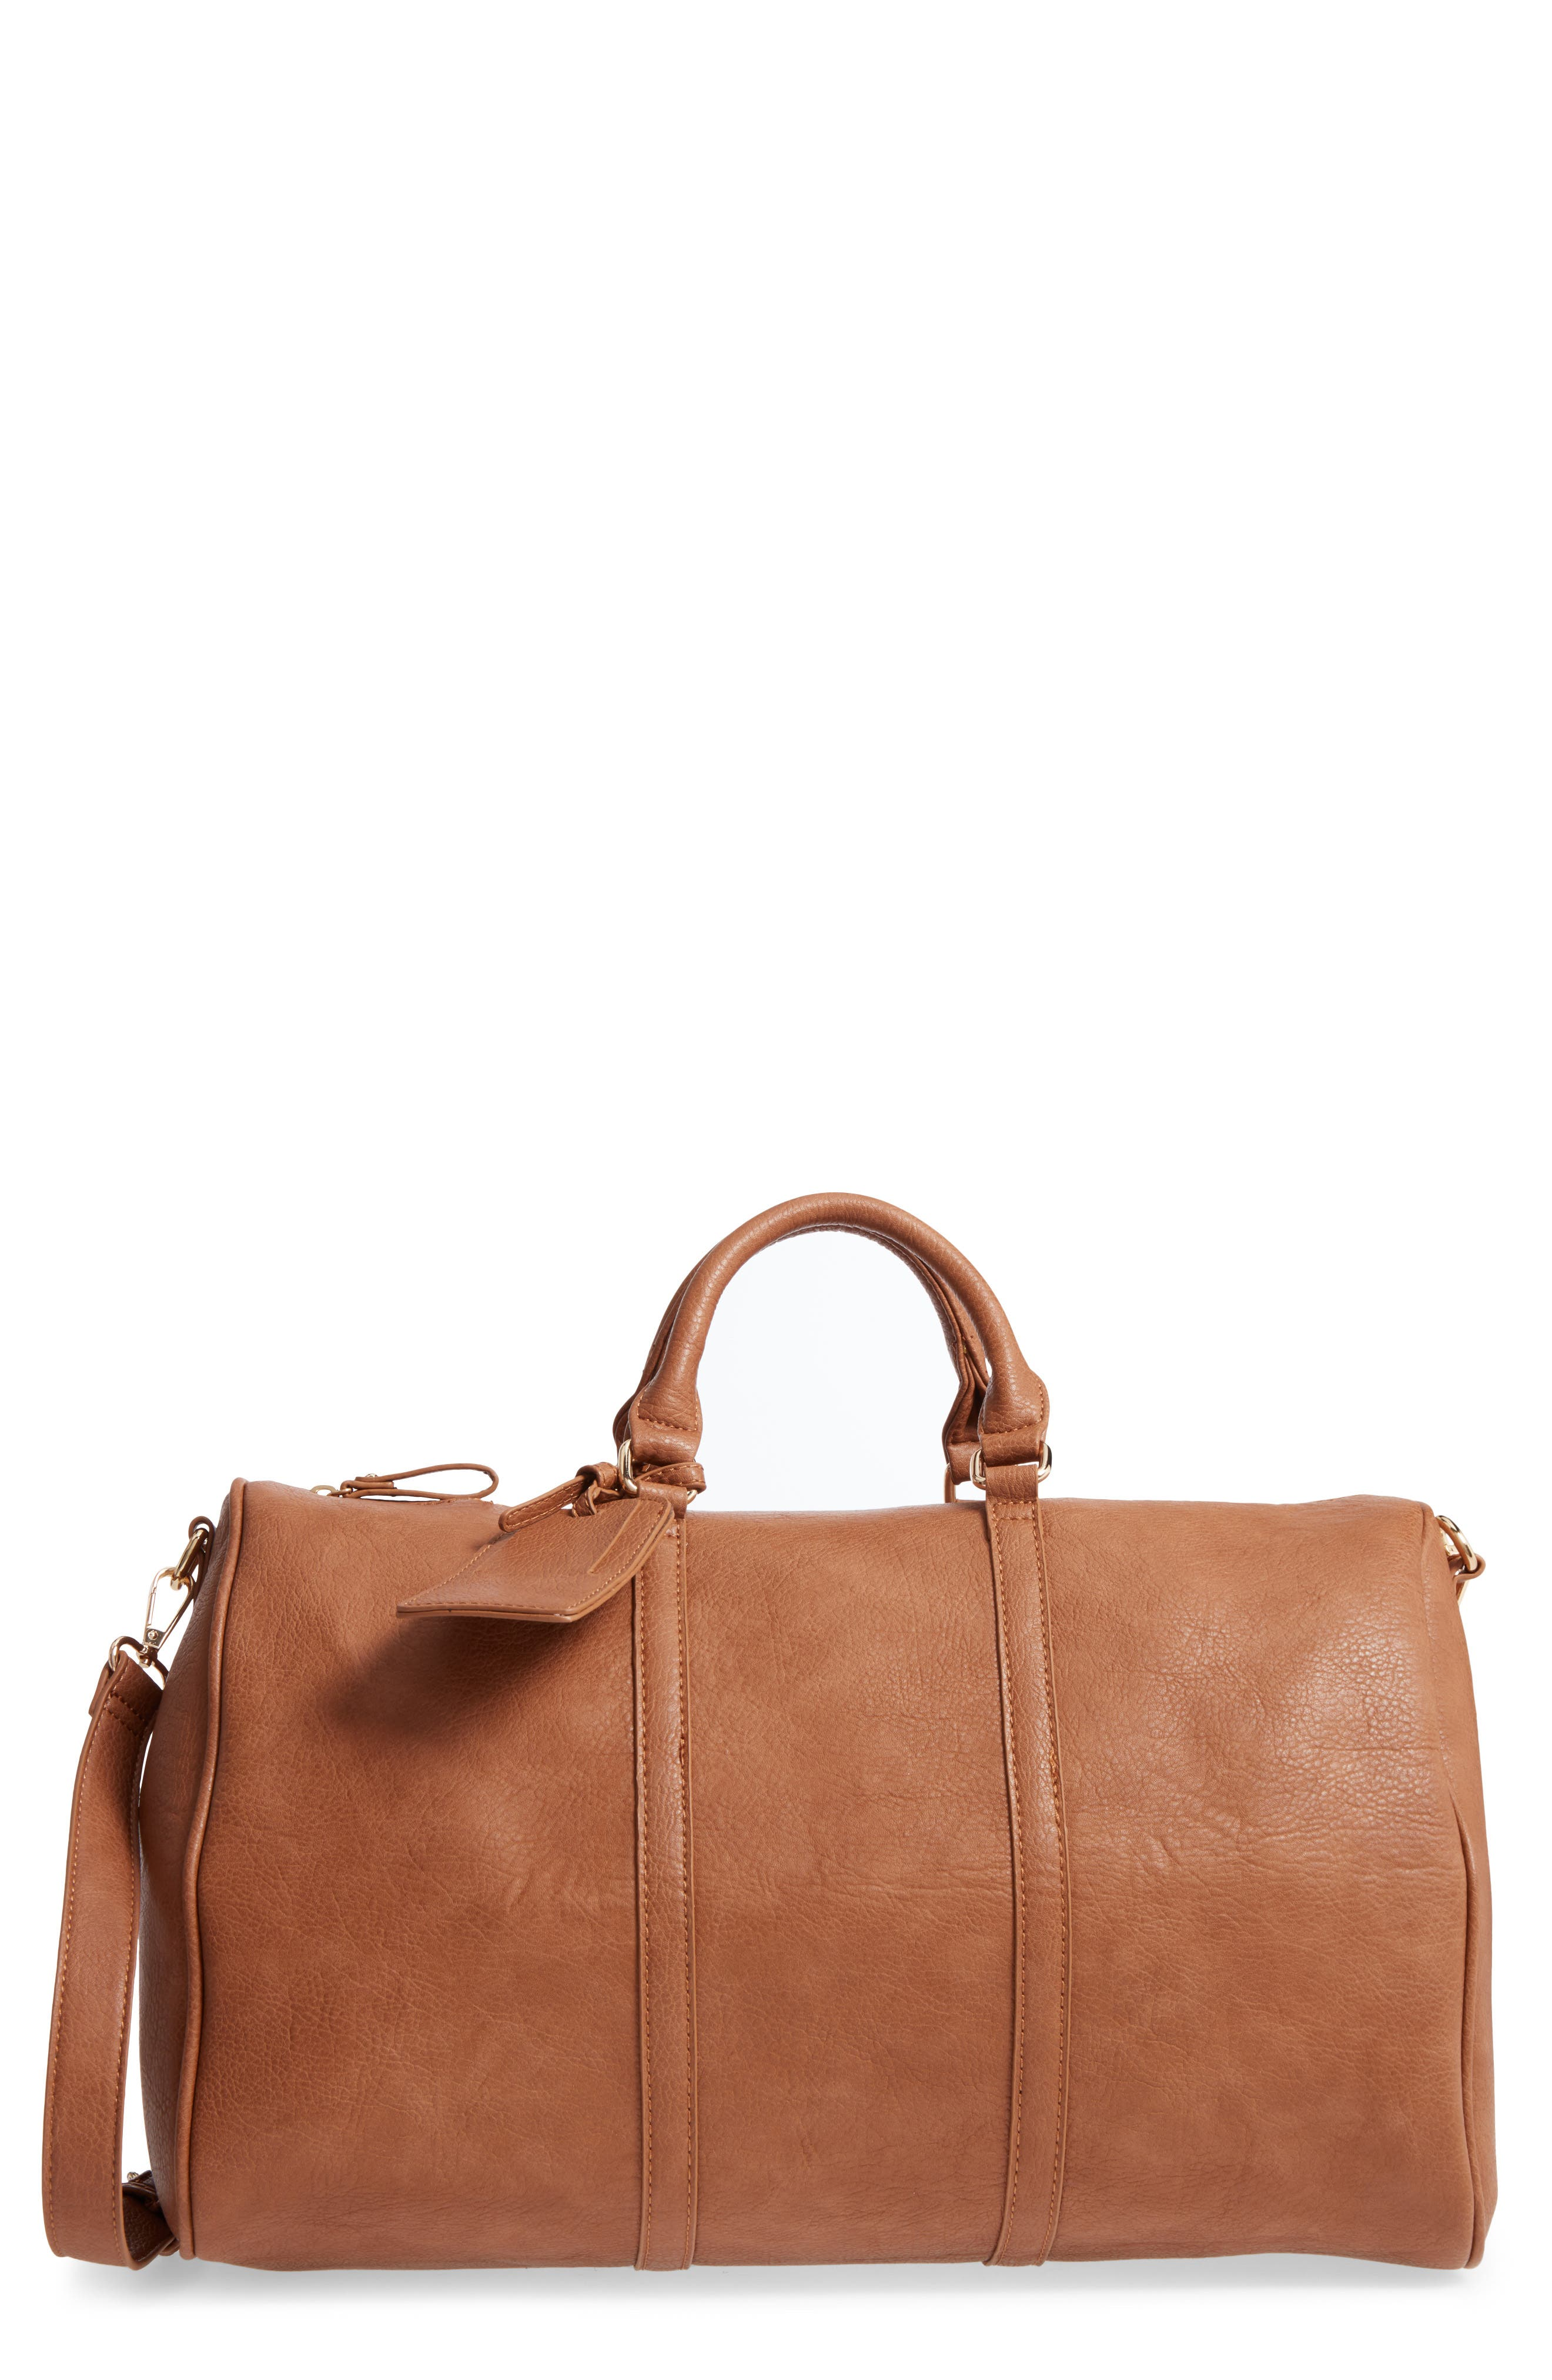 Main Image - Sole Society 'Cassidy' Faux Leather Duffel Bag